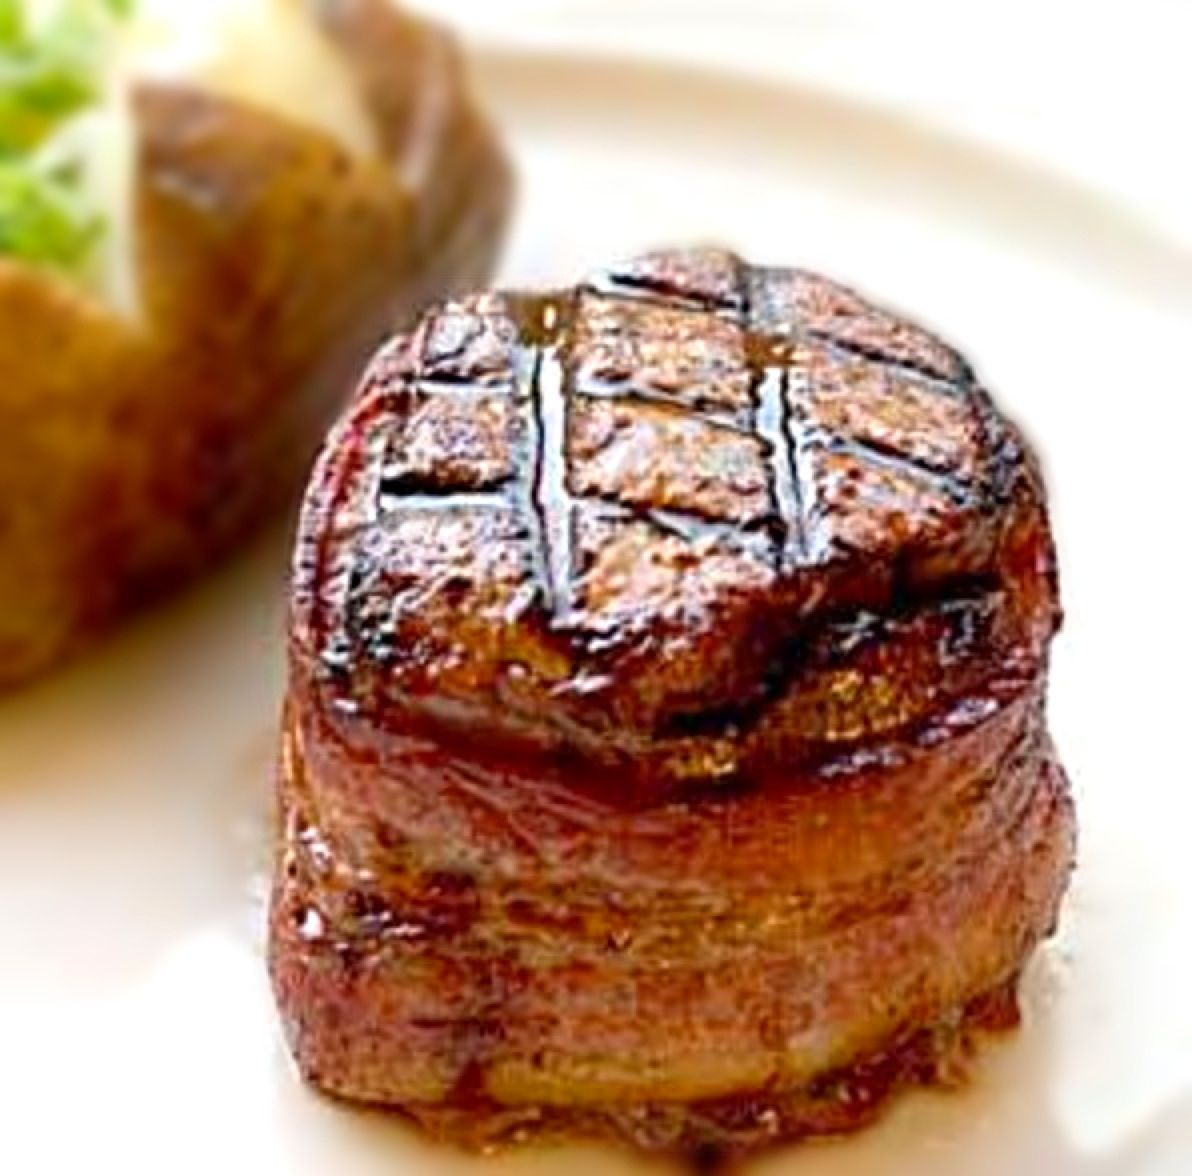 Bacon Wrapped Filet Mignon 0 How To Cook A Beef Tenderloin In The Oven With  This